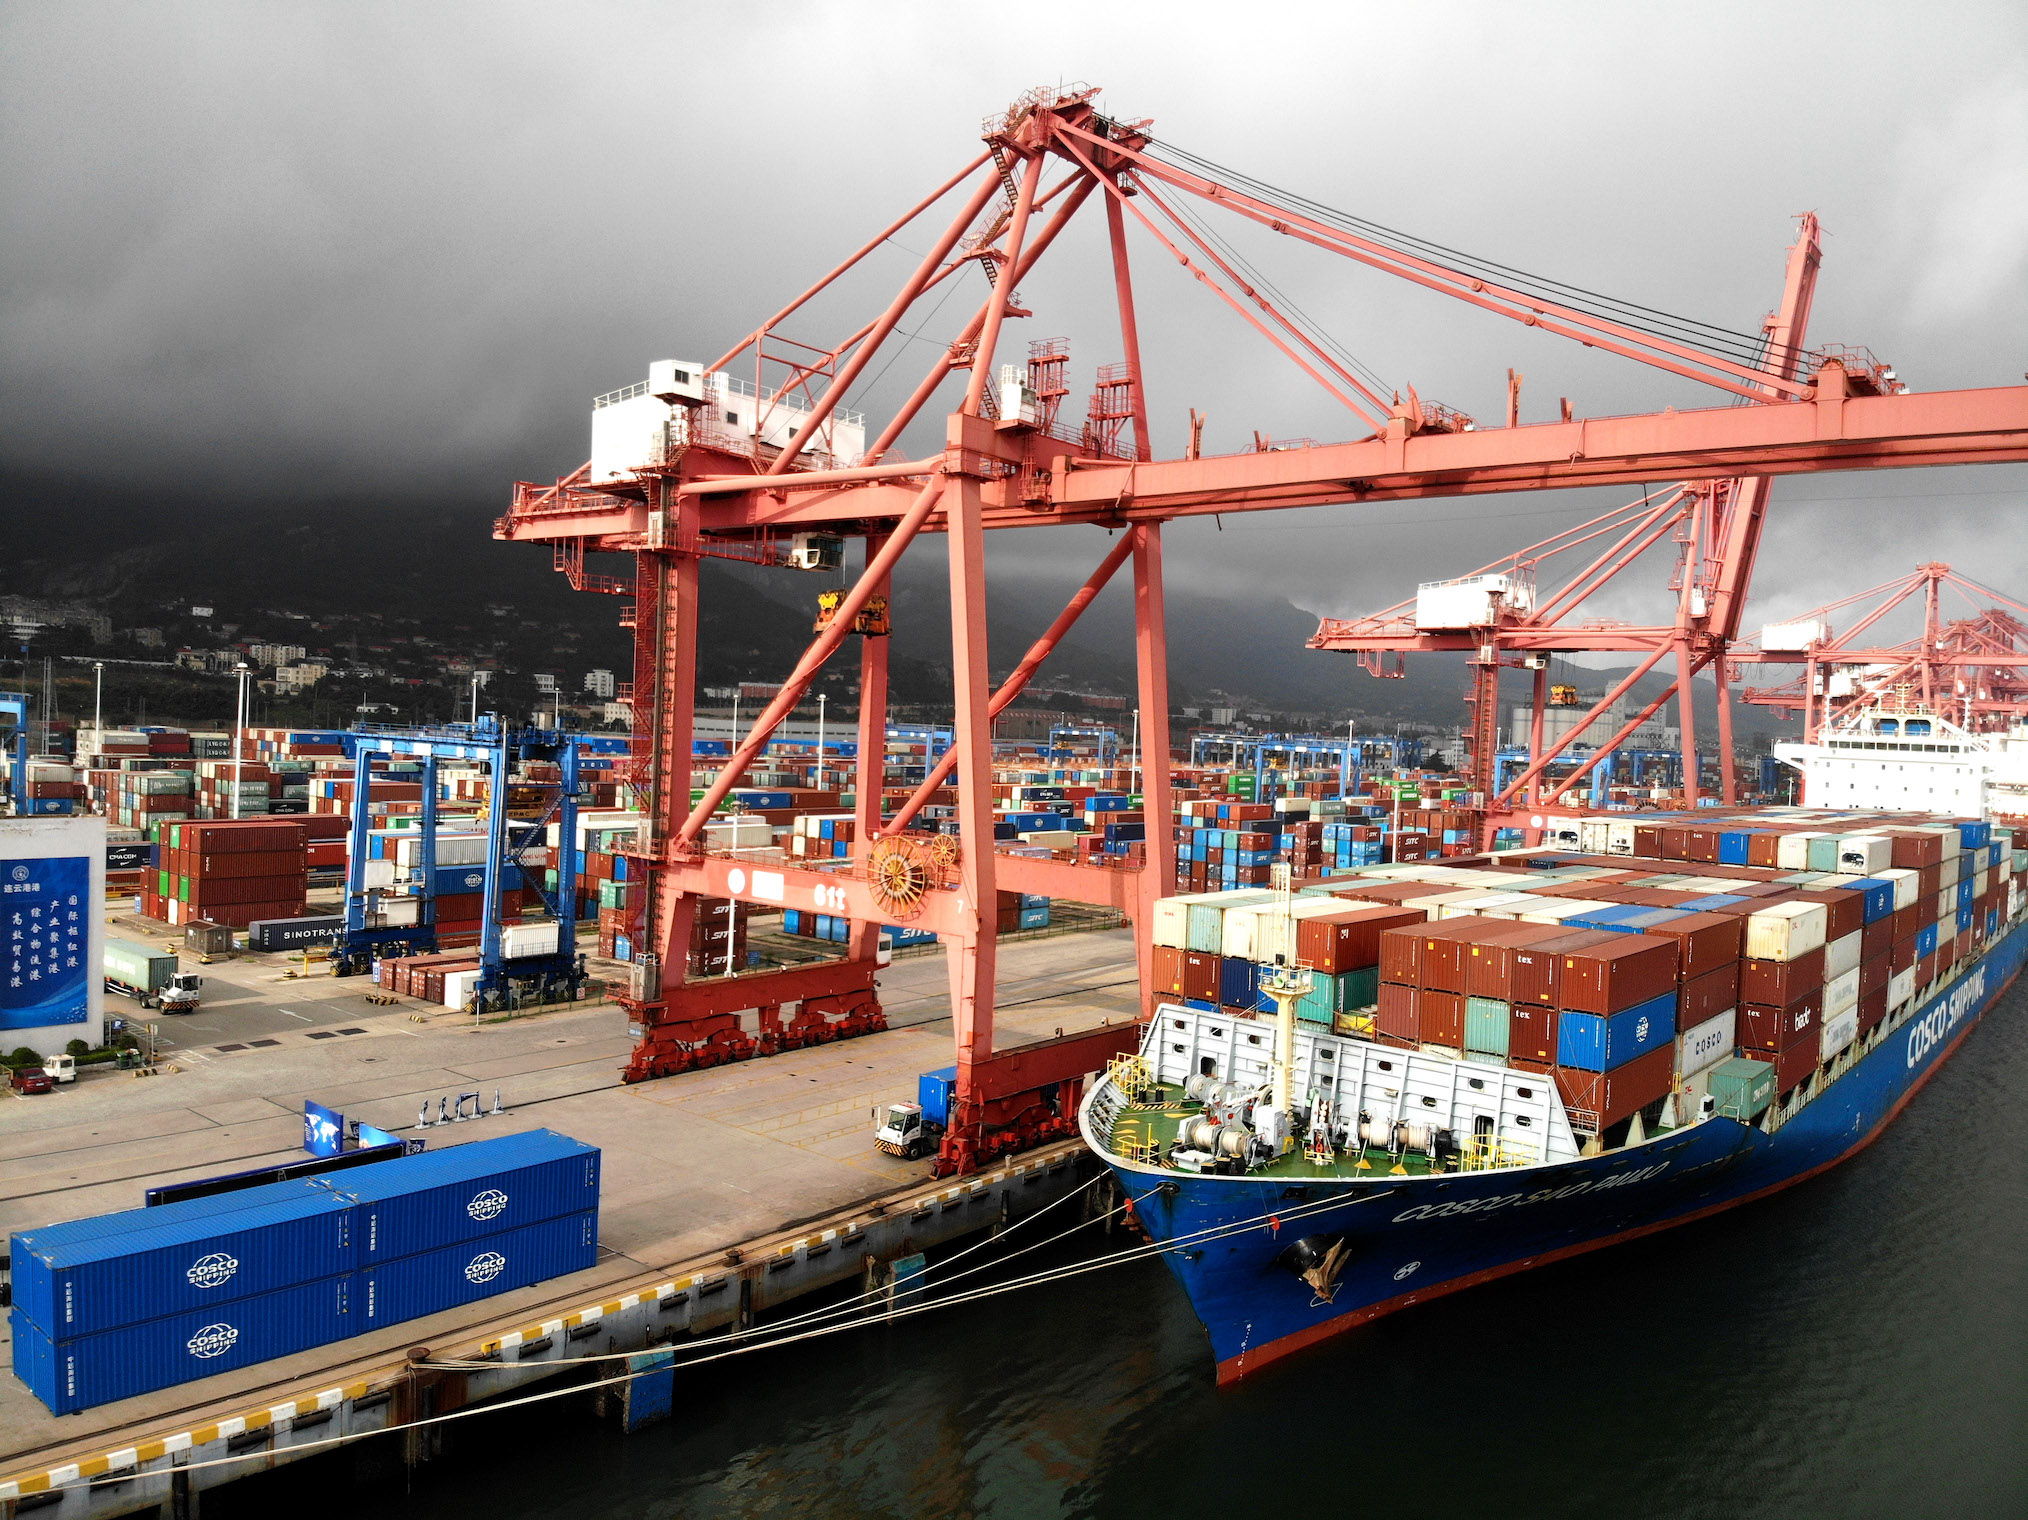 Asia is in a critical position to kick-start global trade reform